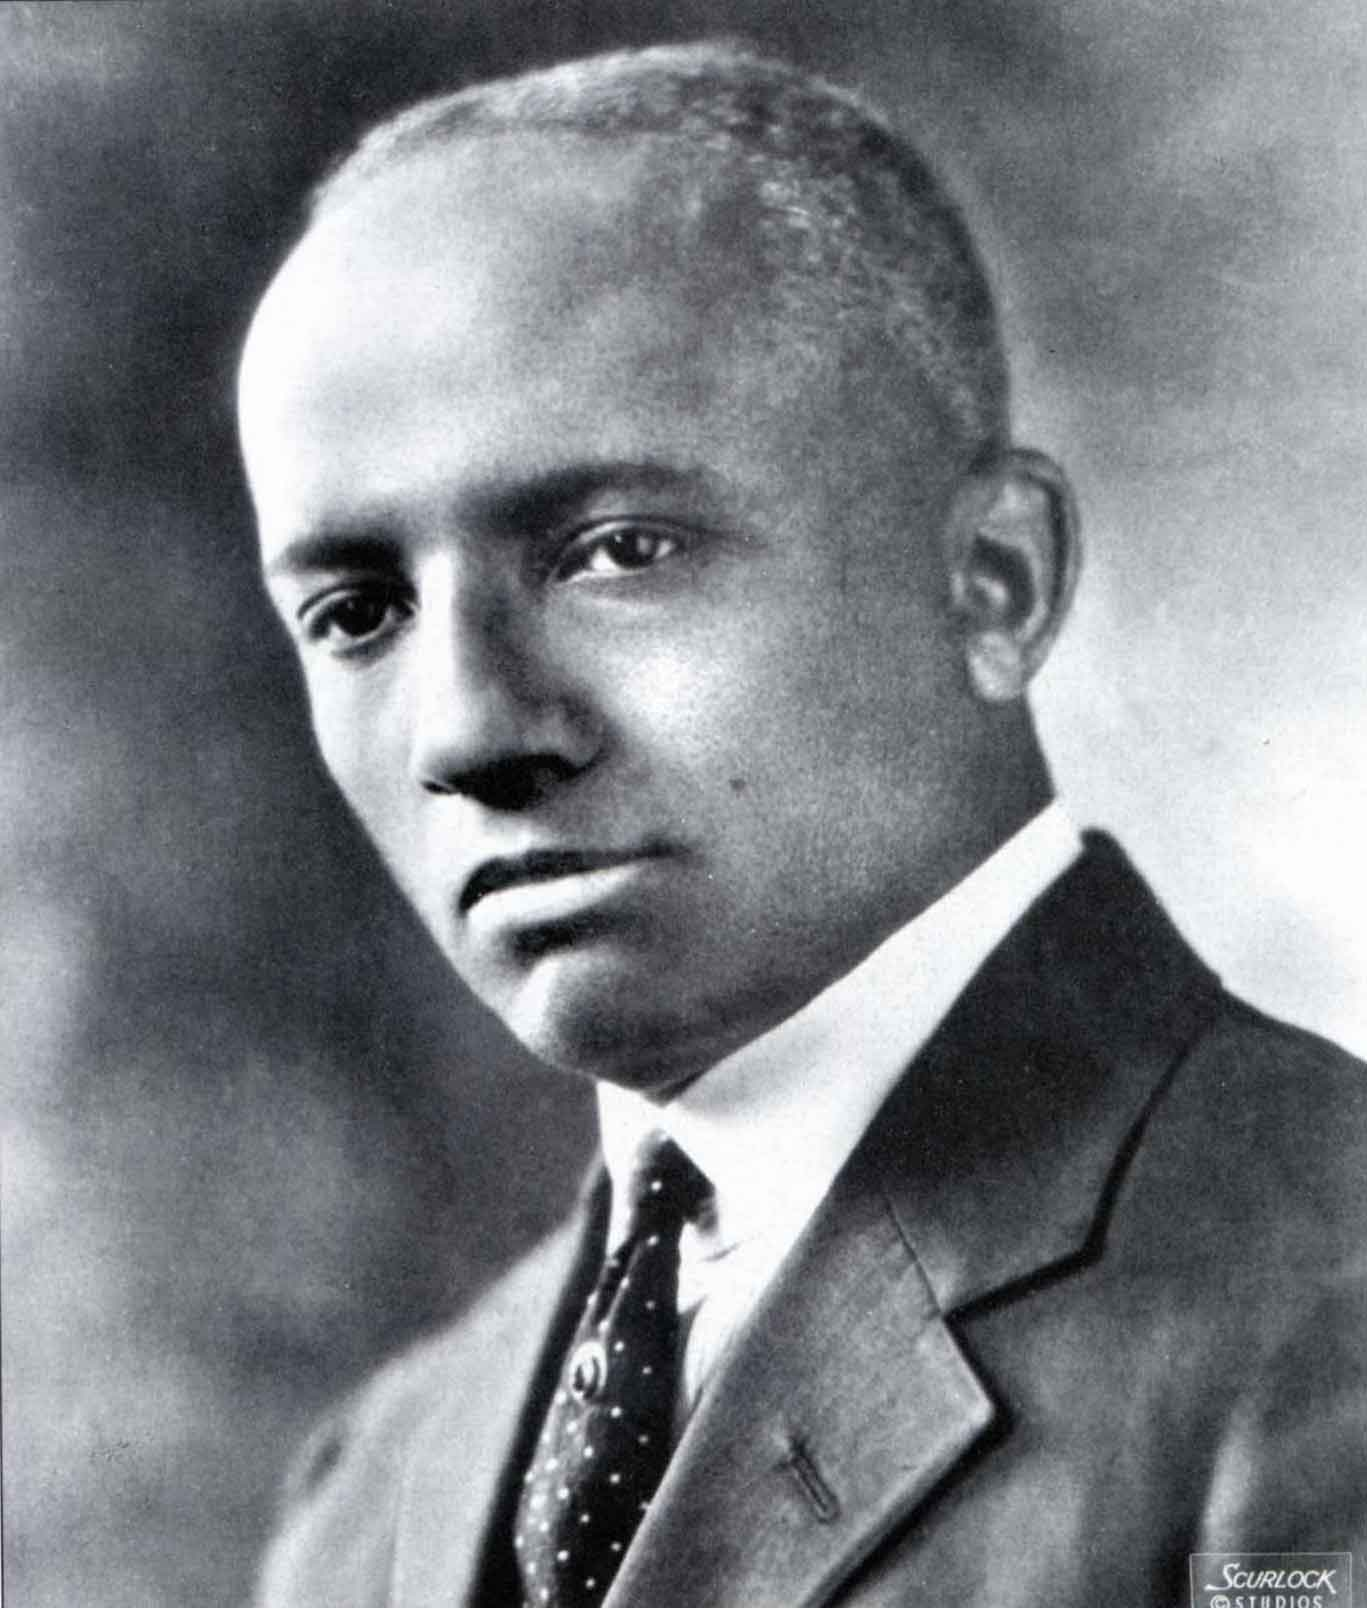 dr carter g woodson The father of black history month, dr carter g woodson, was born in 1875 near new canton, va he was the son of former slaves in 1907, he obtained his master's degree from the university of chicago in 1912, he received his phd from harvard university in 1915, he and friends established the.